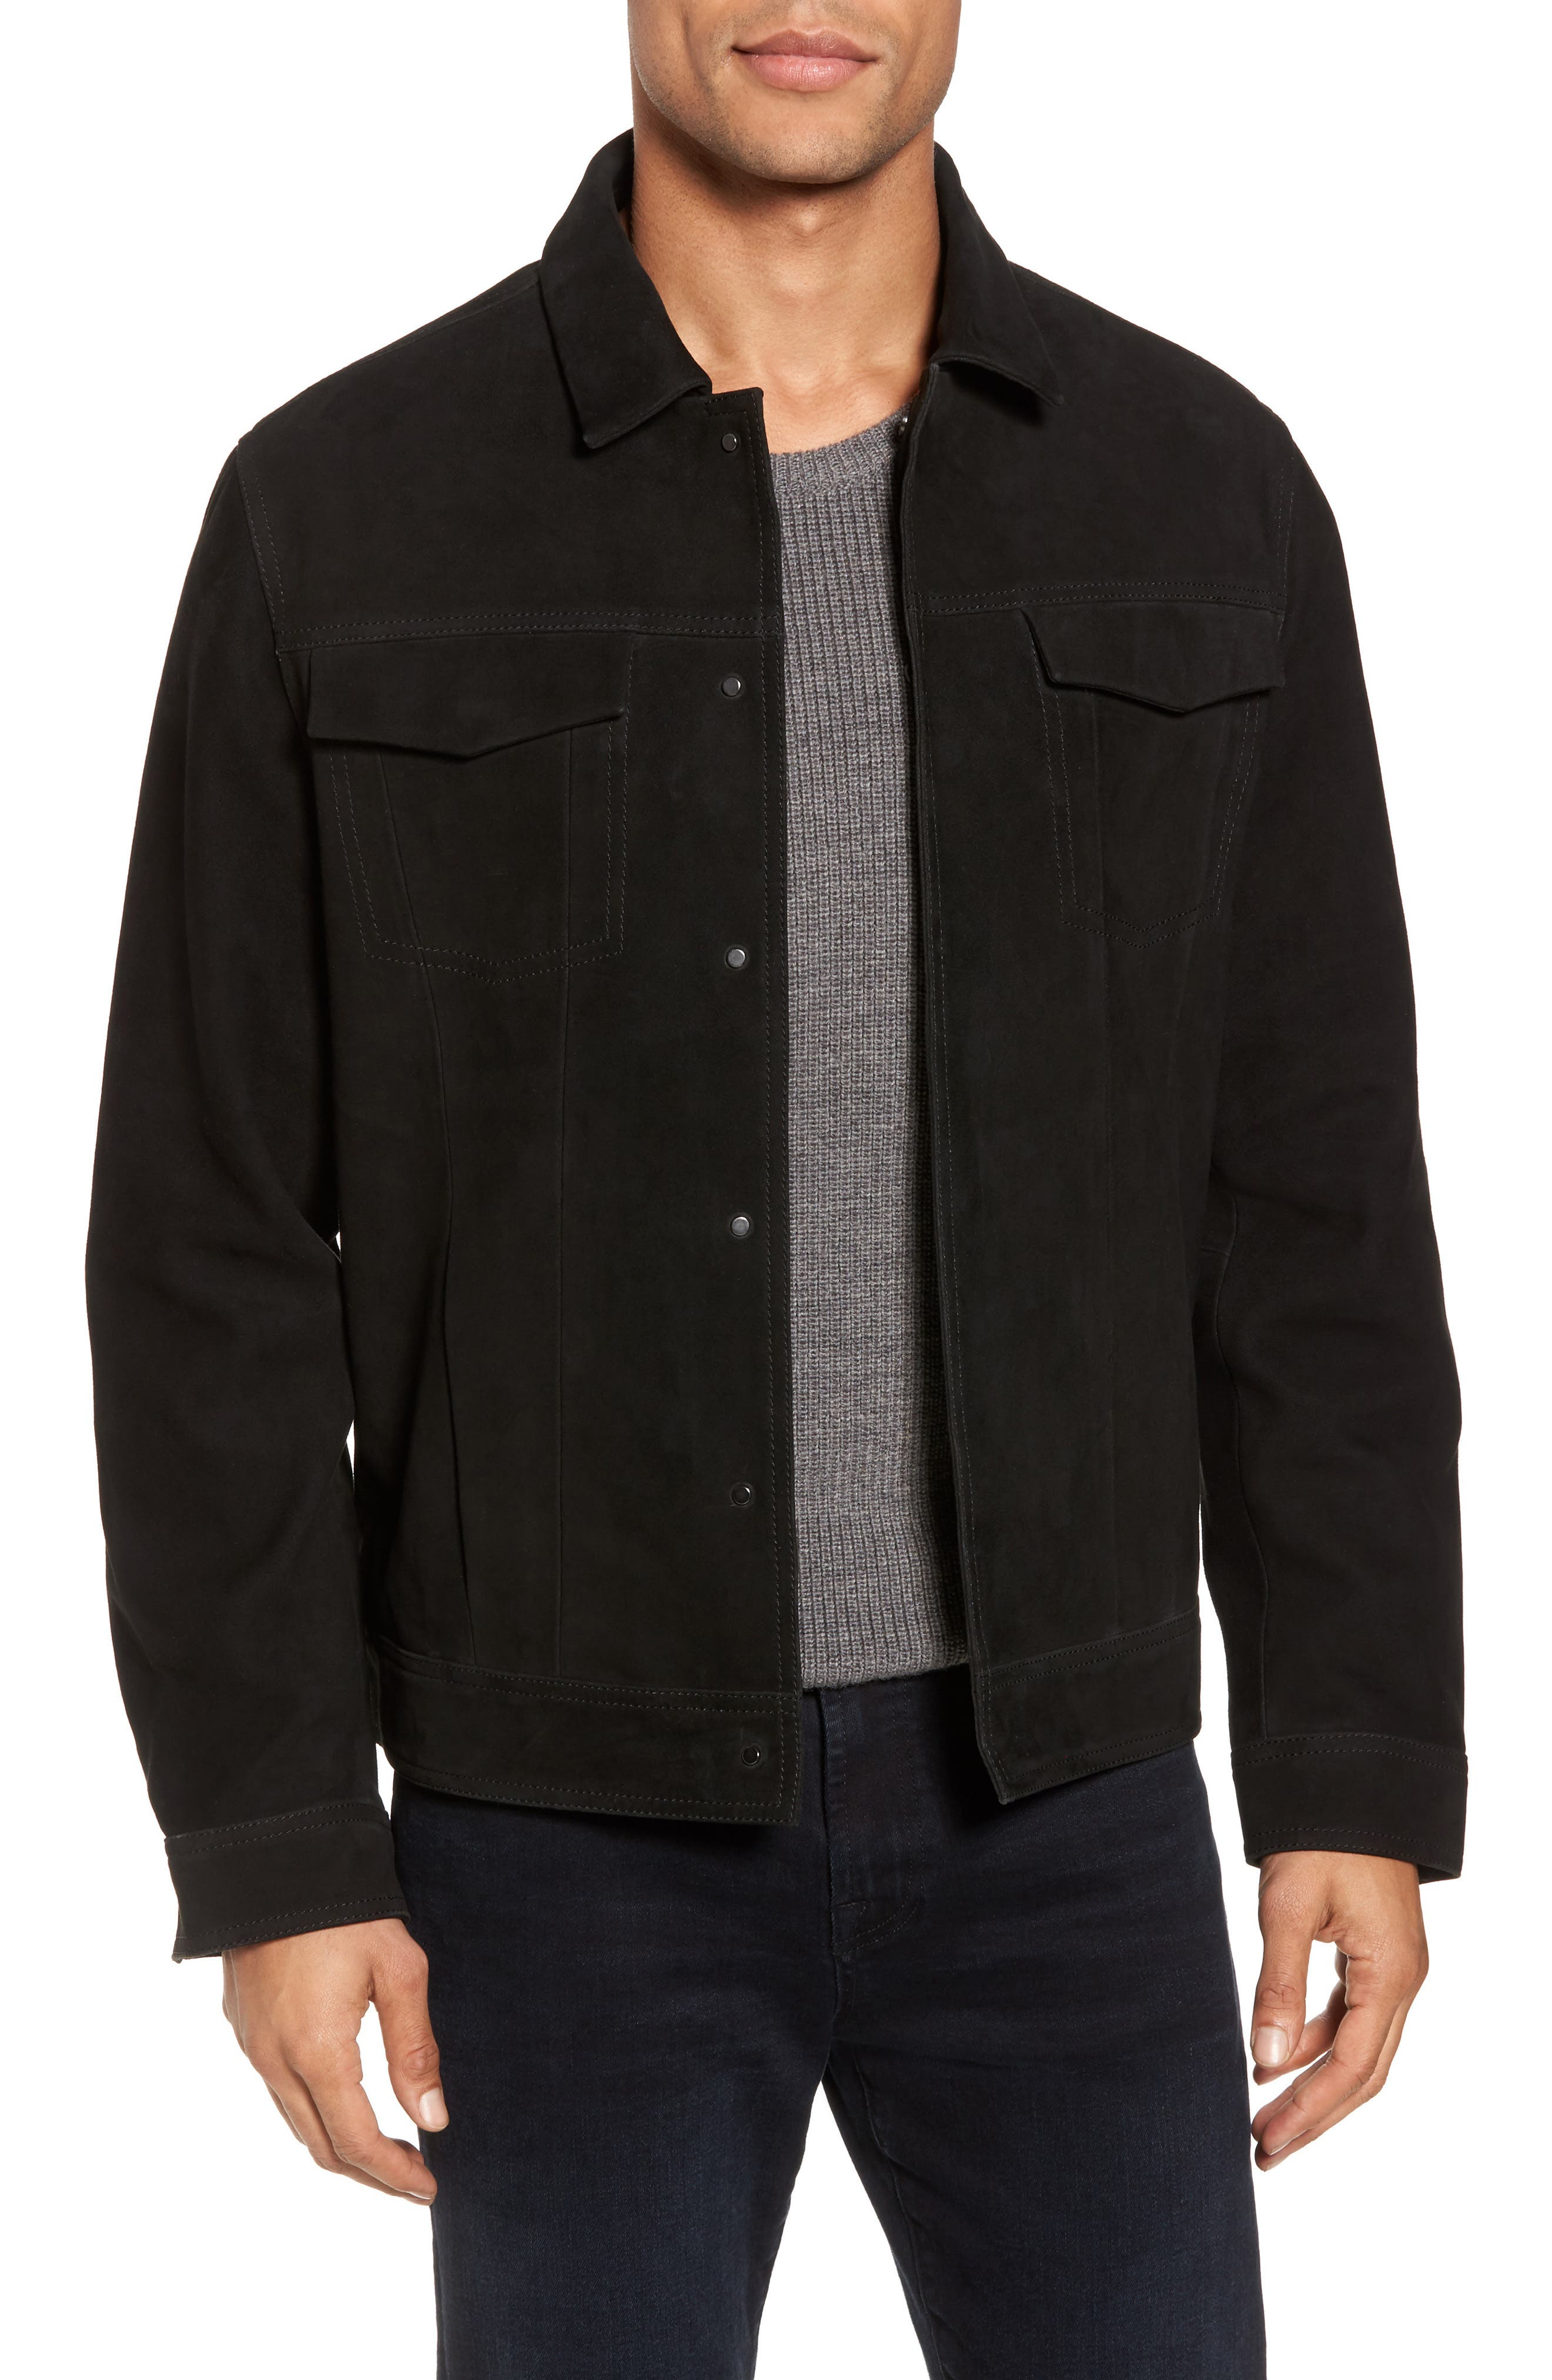 Suede Trucker Jacket by Calibrate